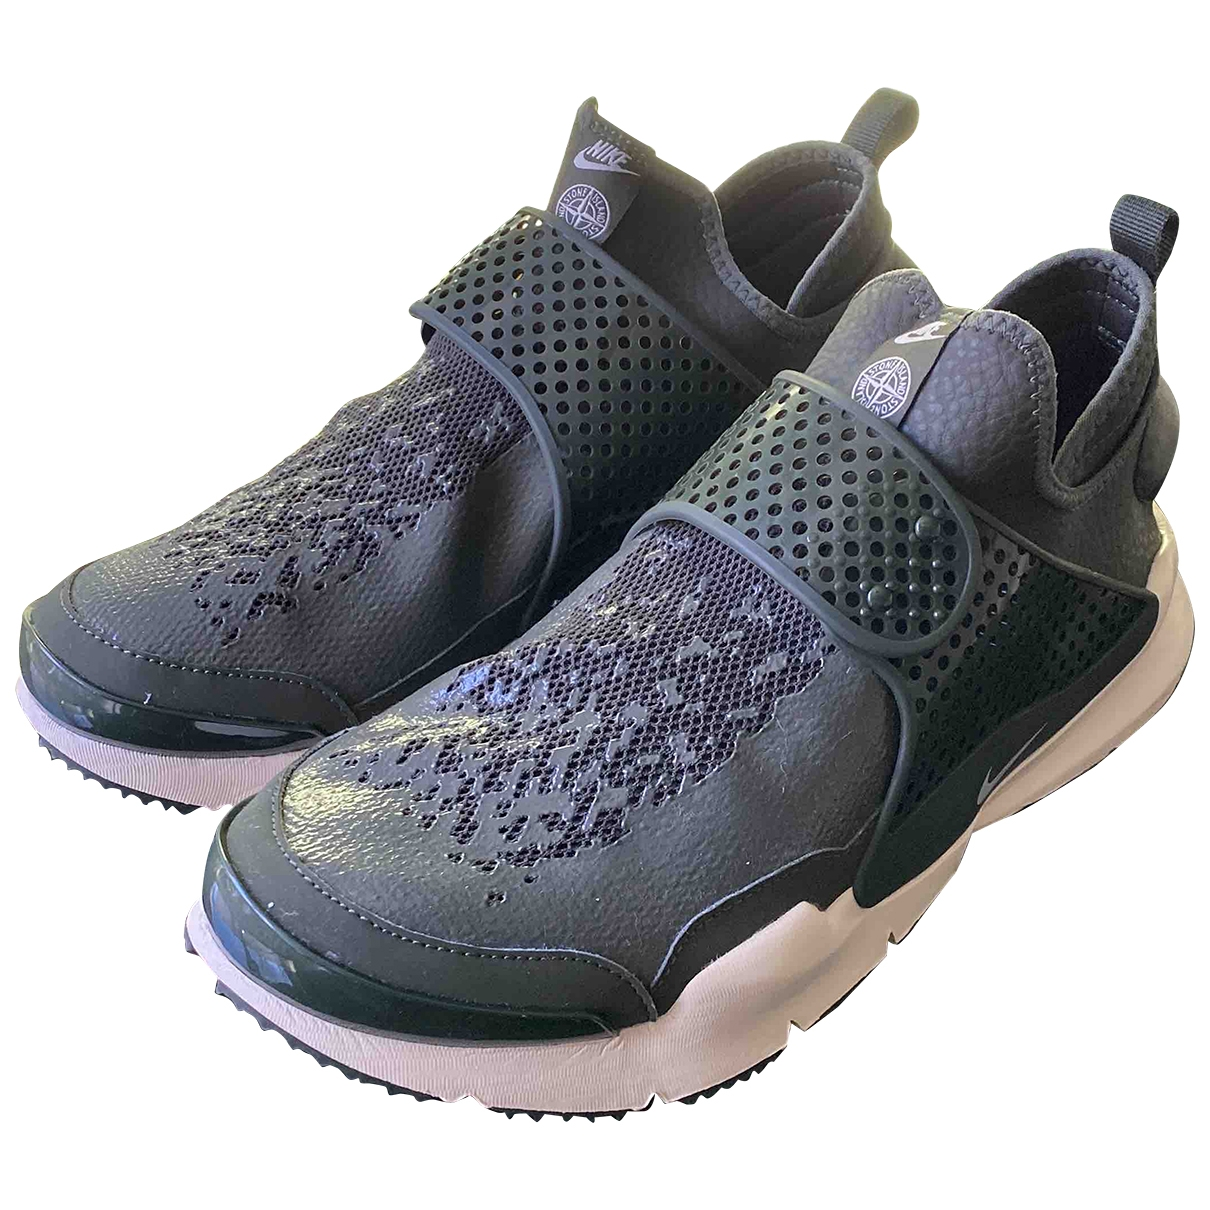 Nike Sock Dart Green Leather Trainers for Men 9 US